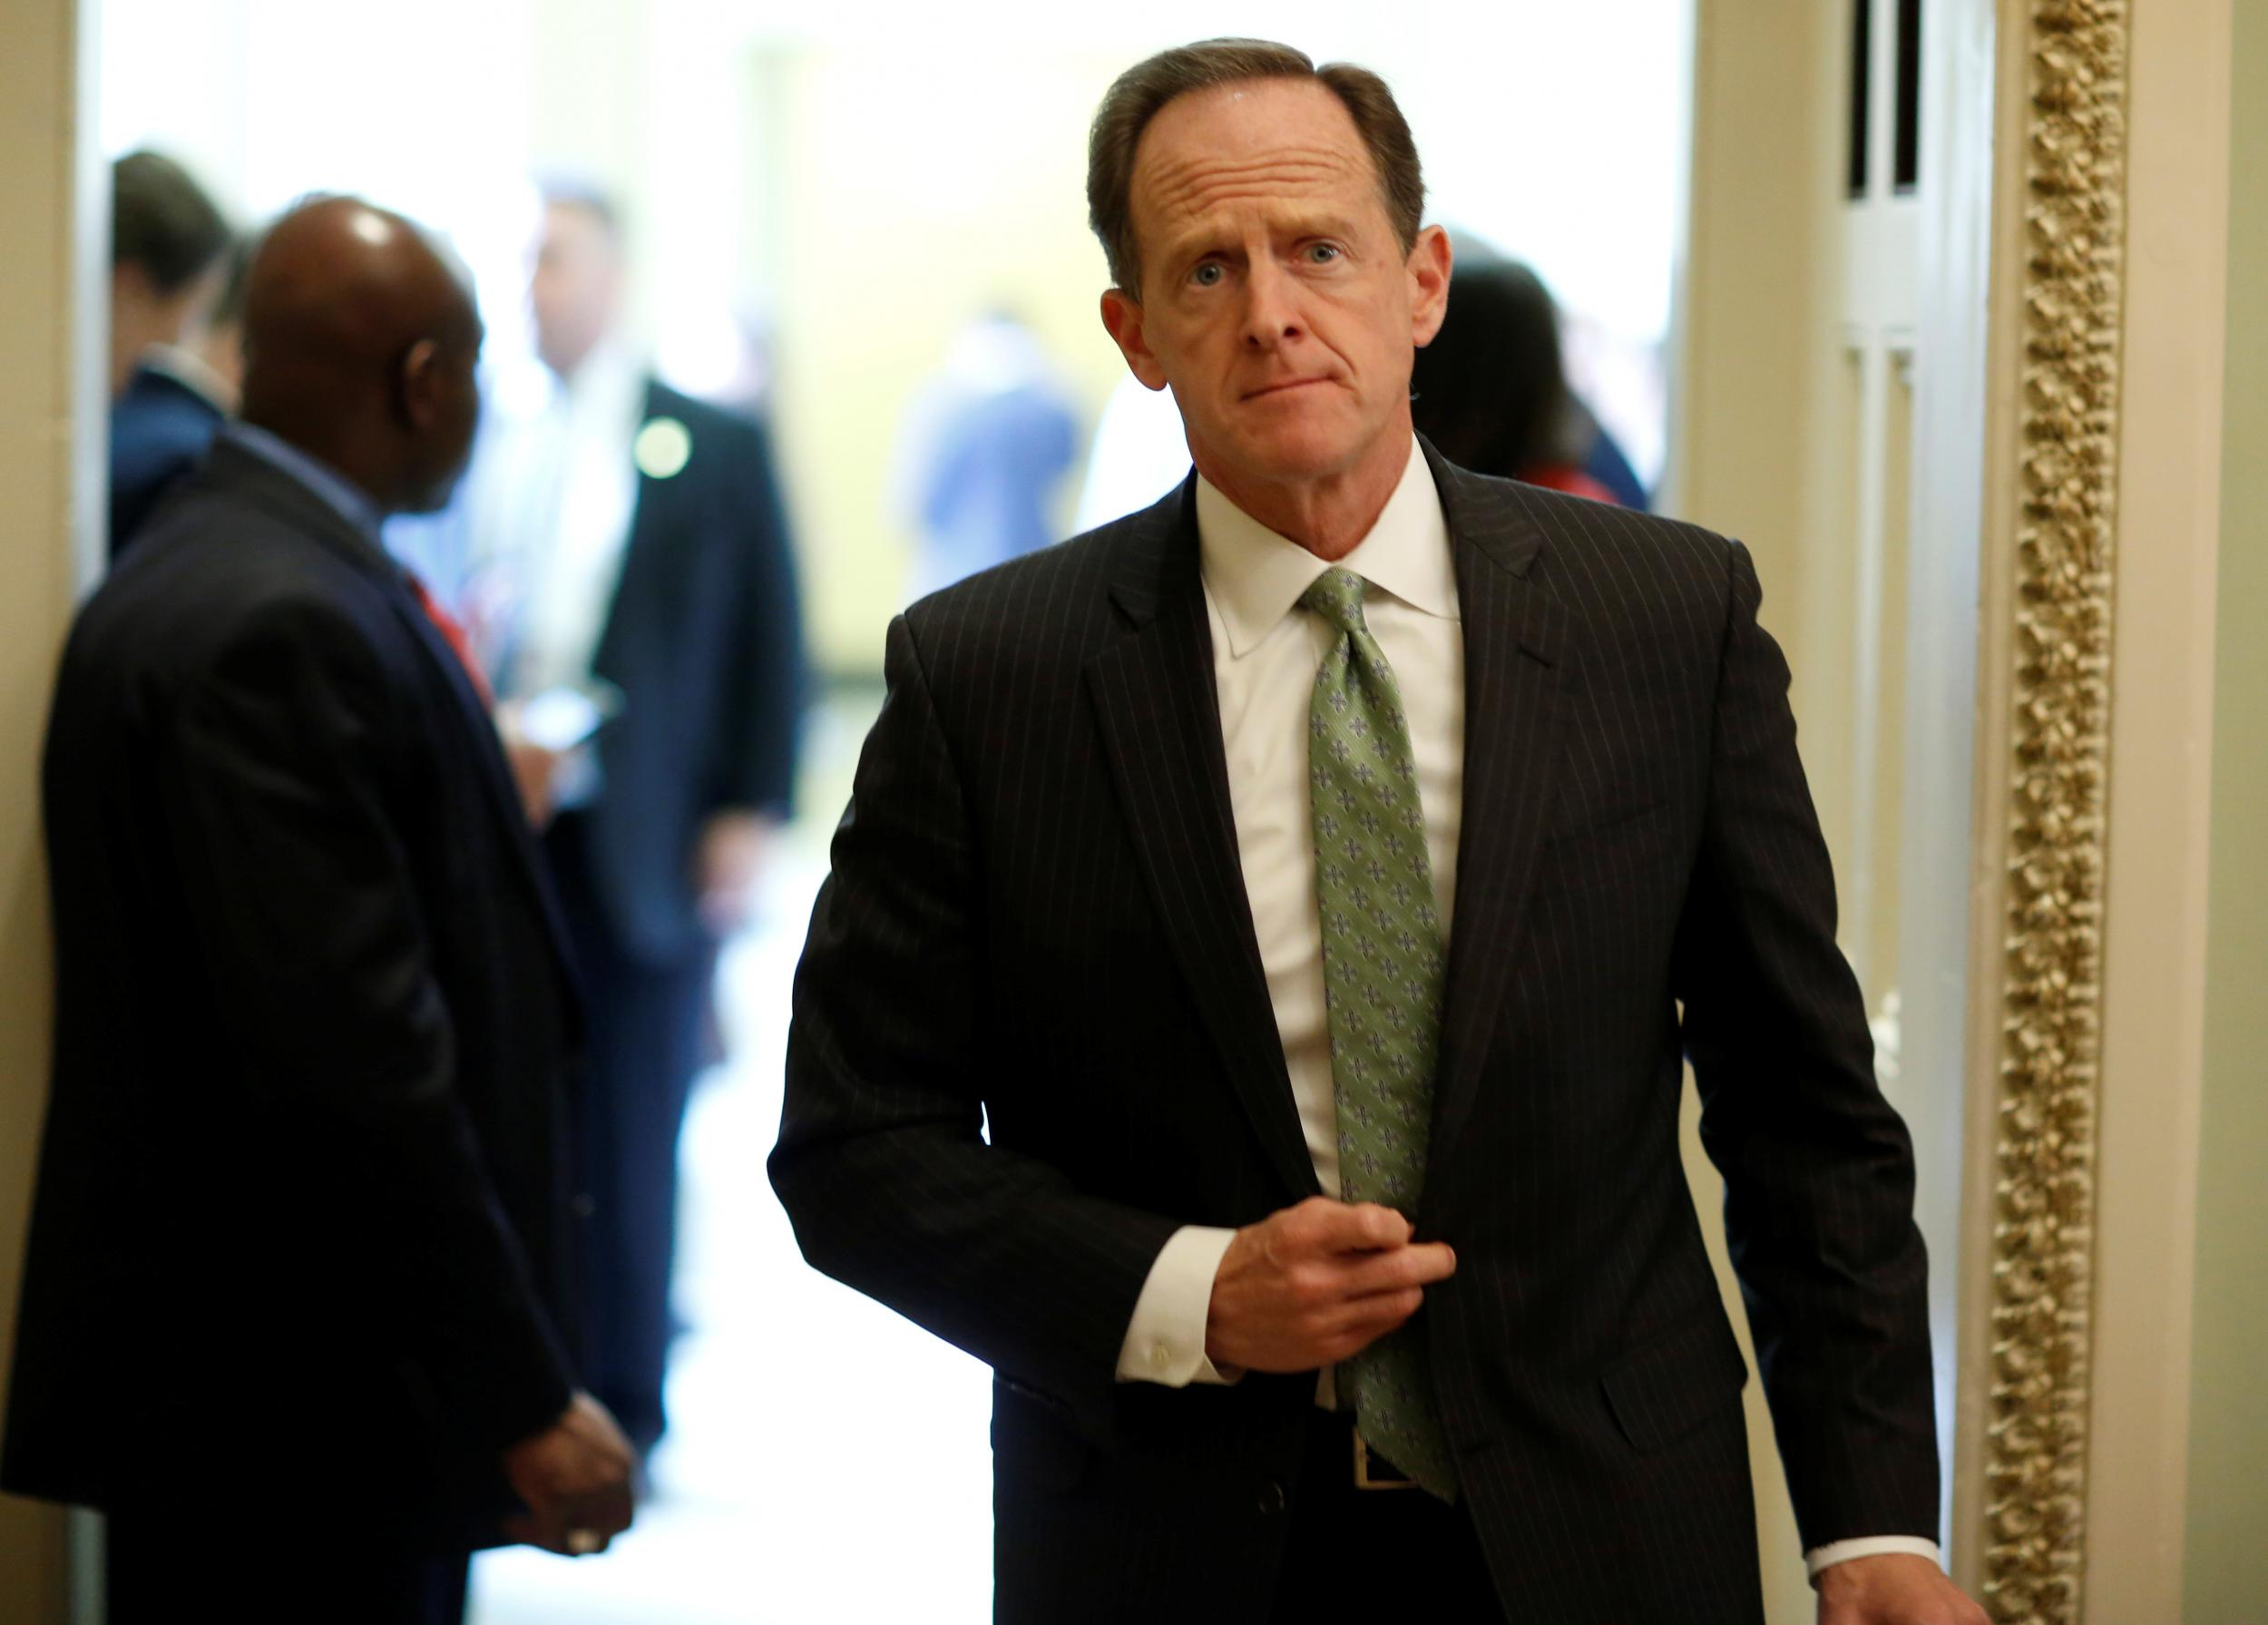 Republican senator Pat Toomey says migrant family separations 'exaggerated', then admits he has no idea and maybe it's happening a lot